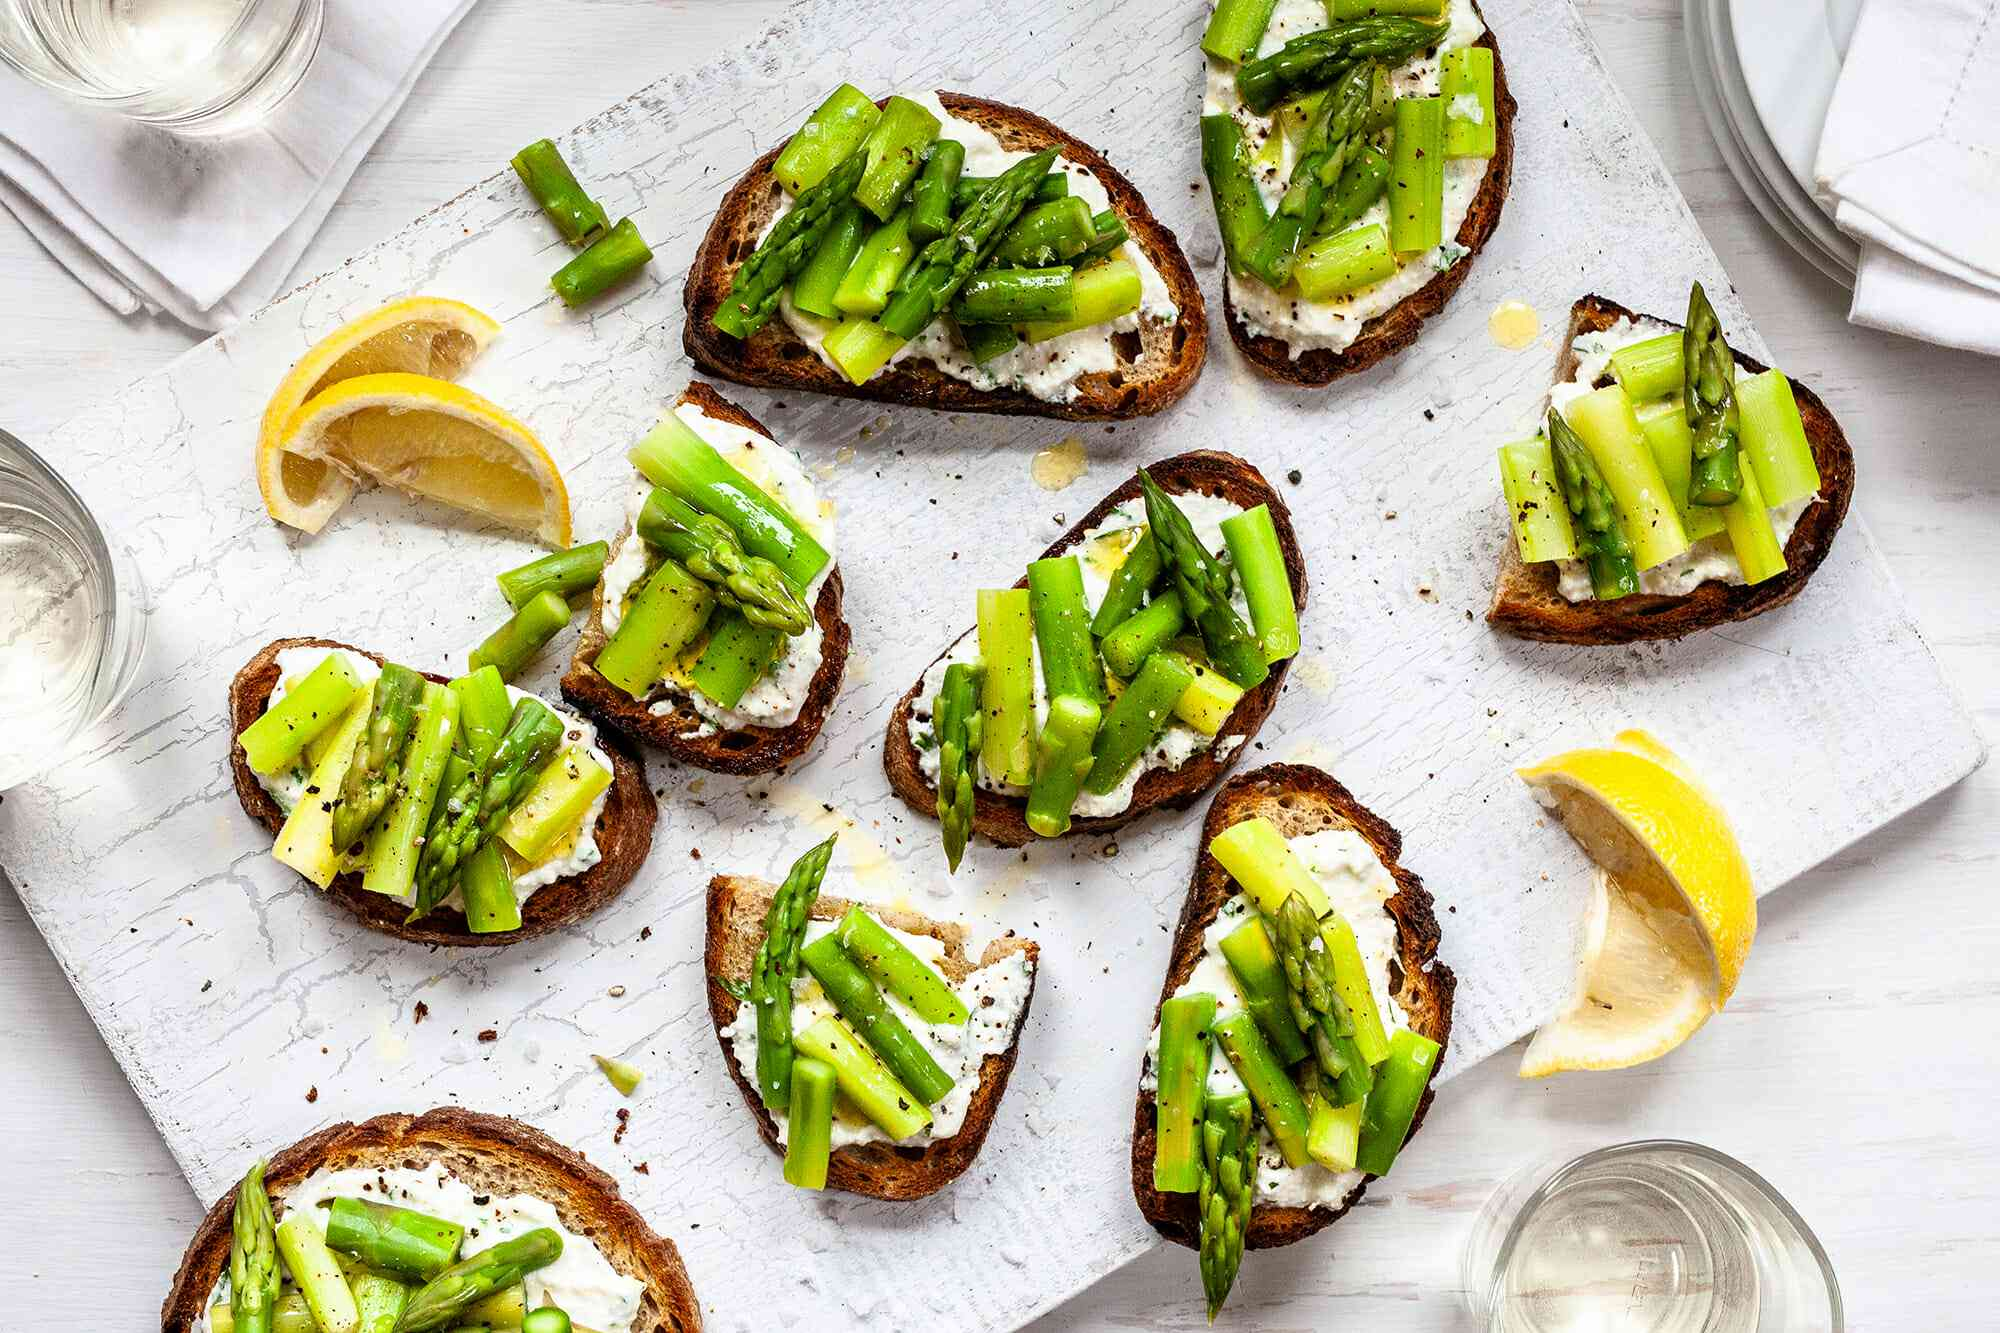 Crostini Recipe with Asparagus - many bruschetta with asparagus and ricotta on a white background with lemon wedges